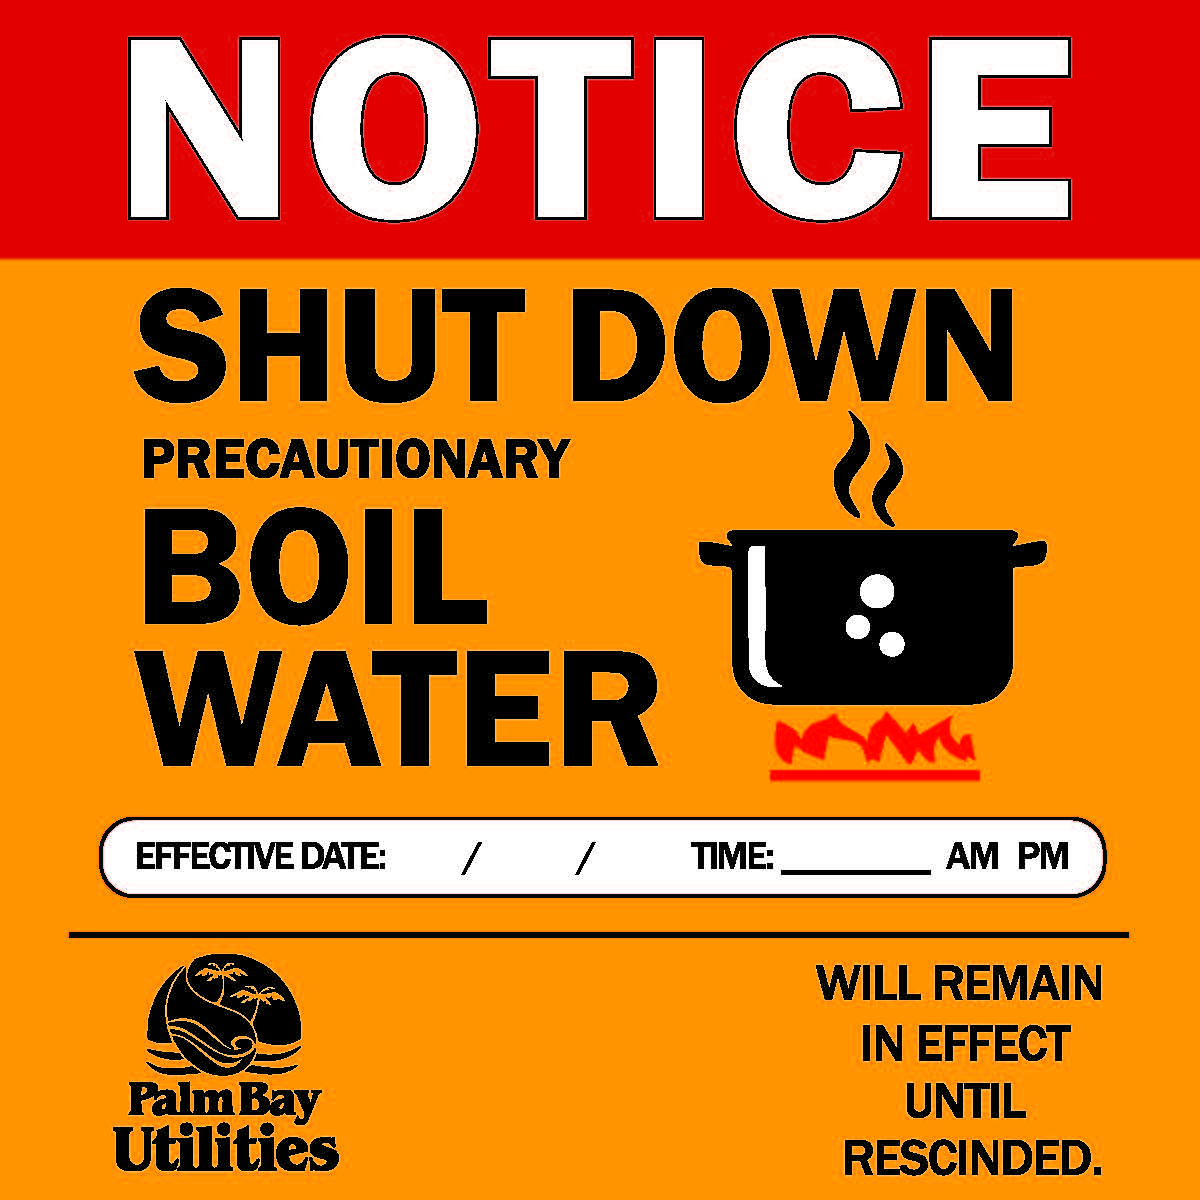 Yard Stake Notice for Water Shut Down, Must Boil Water Until Rescinded.